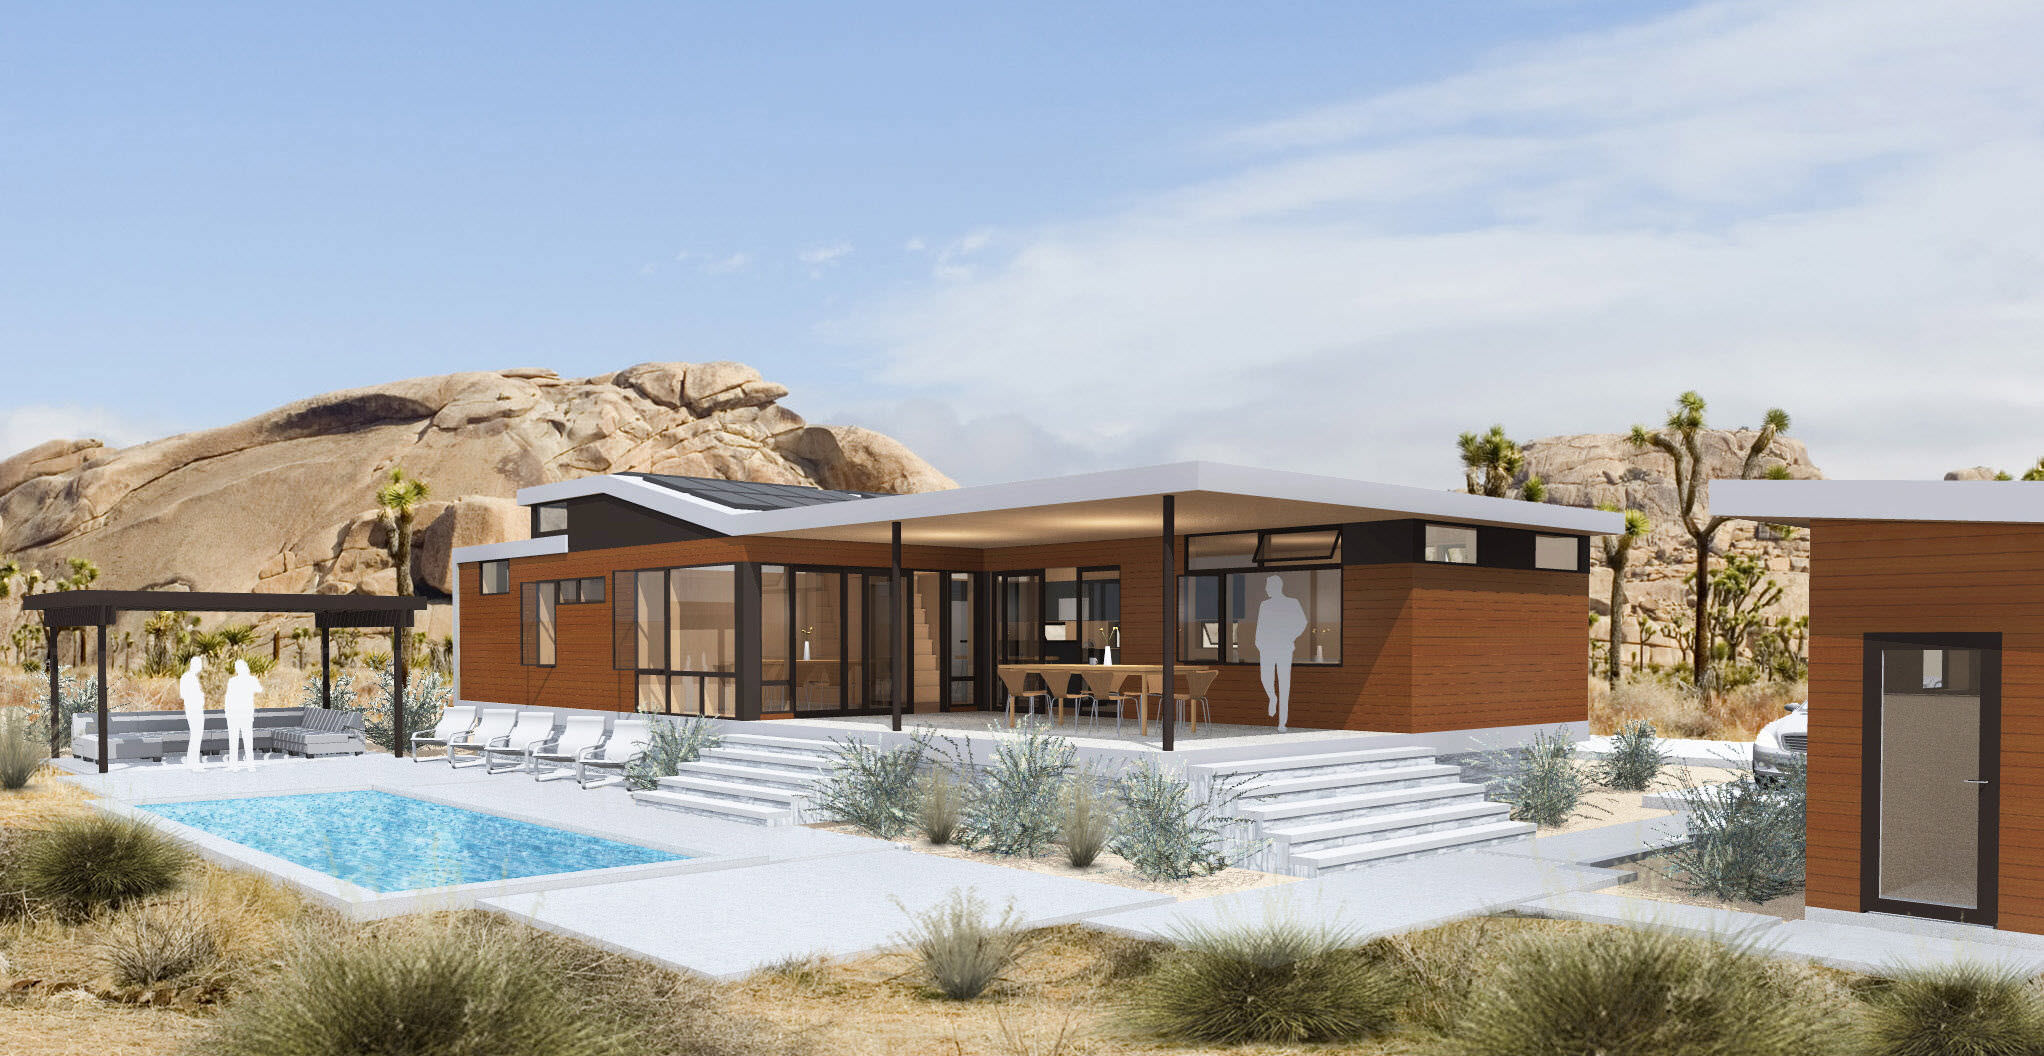 Prefab micro house contemporary wooden single story cali duo 1 sustain